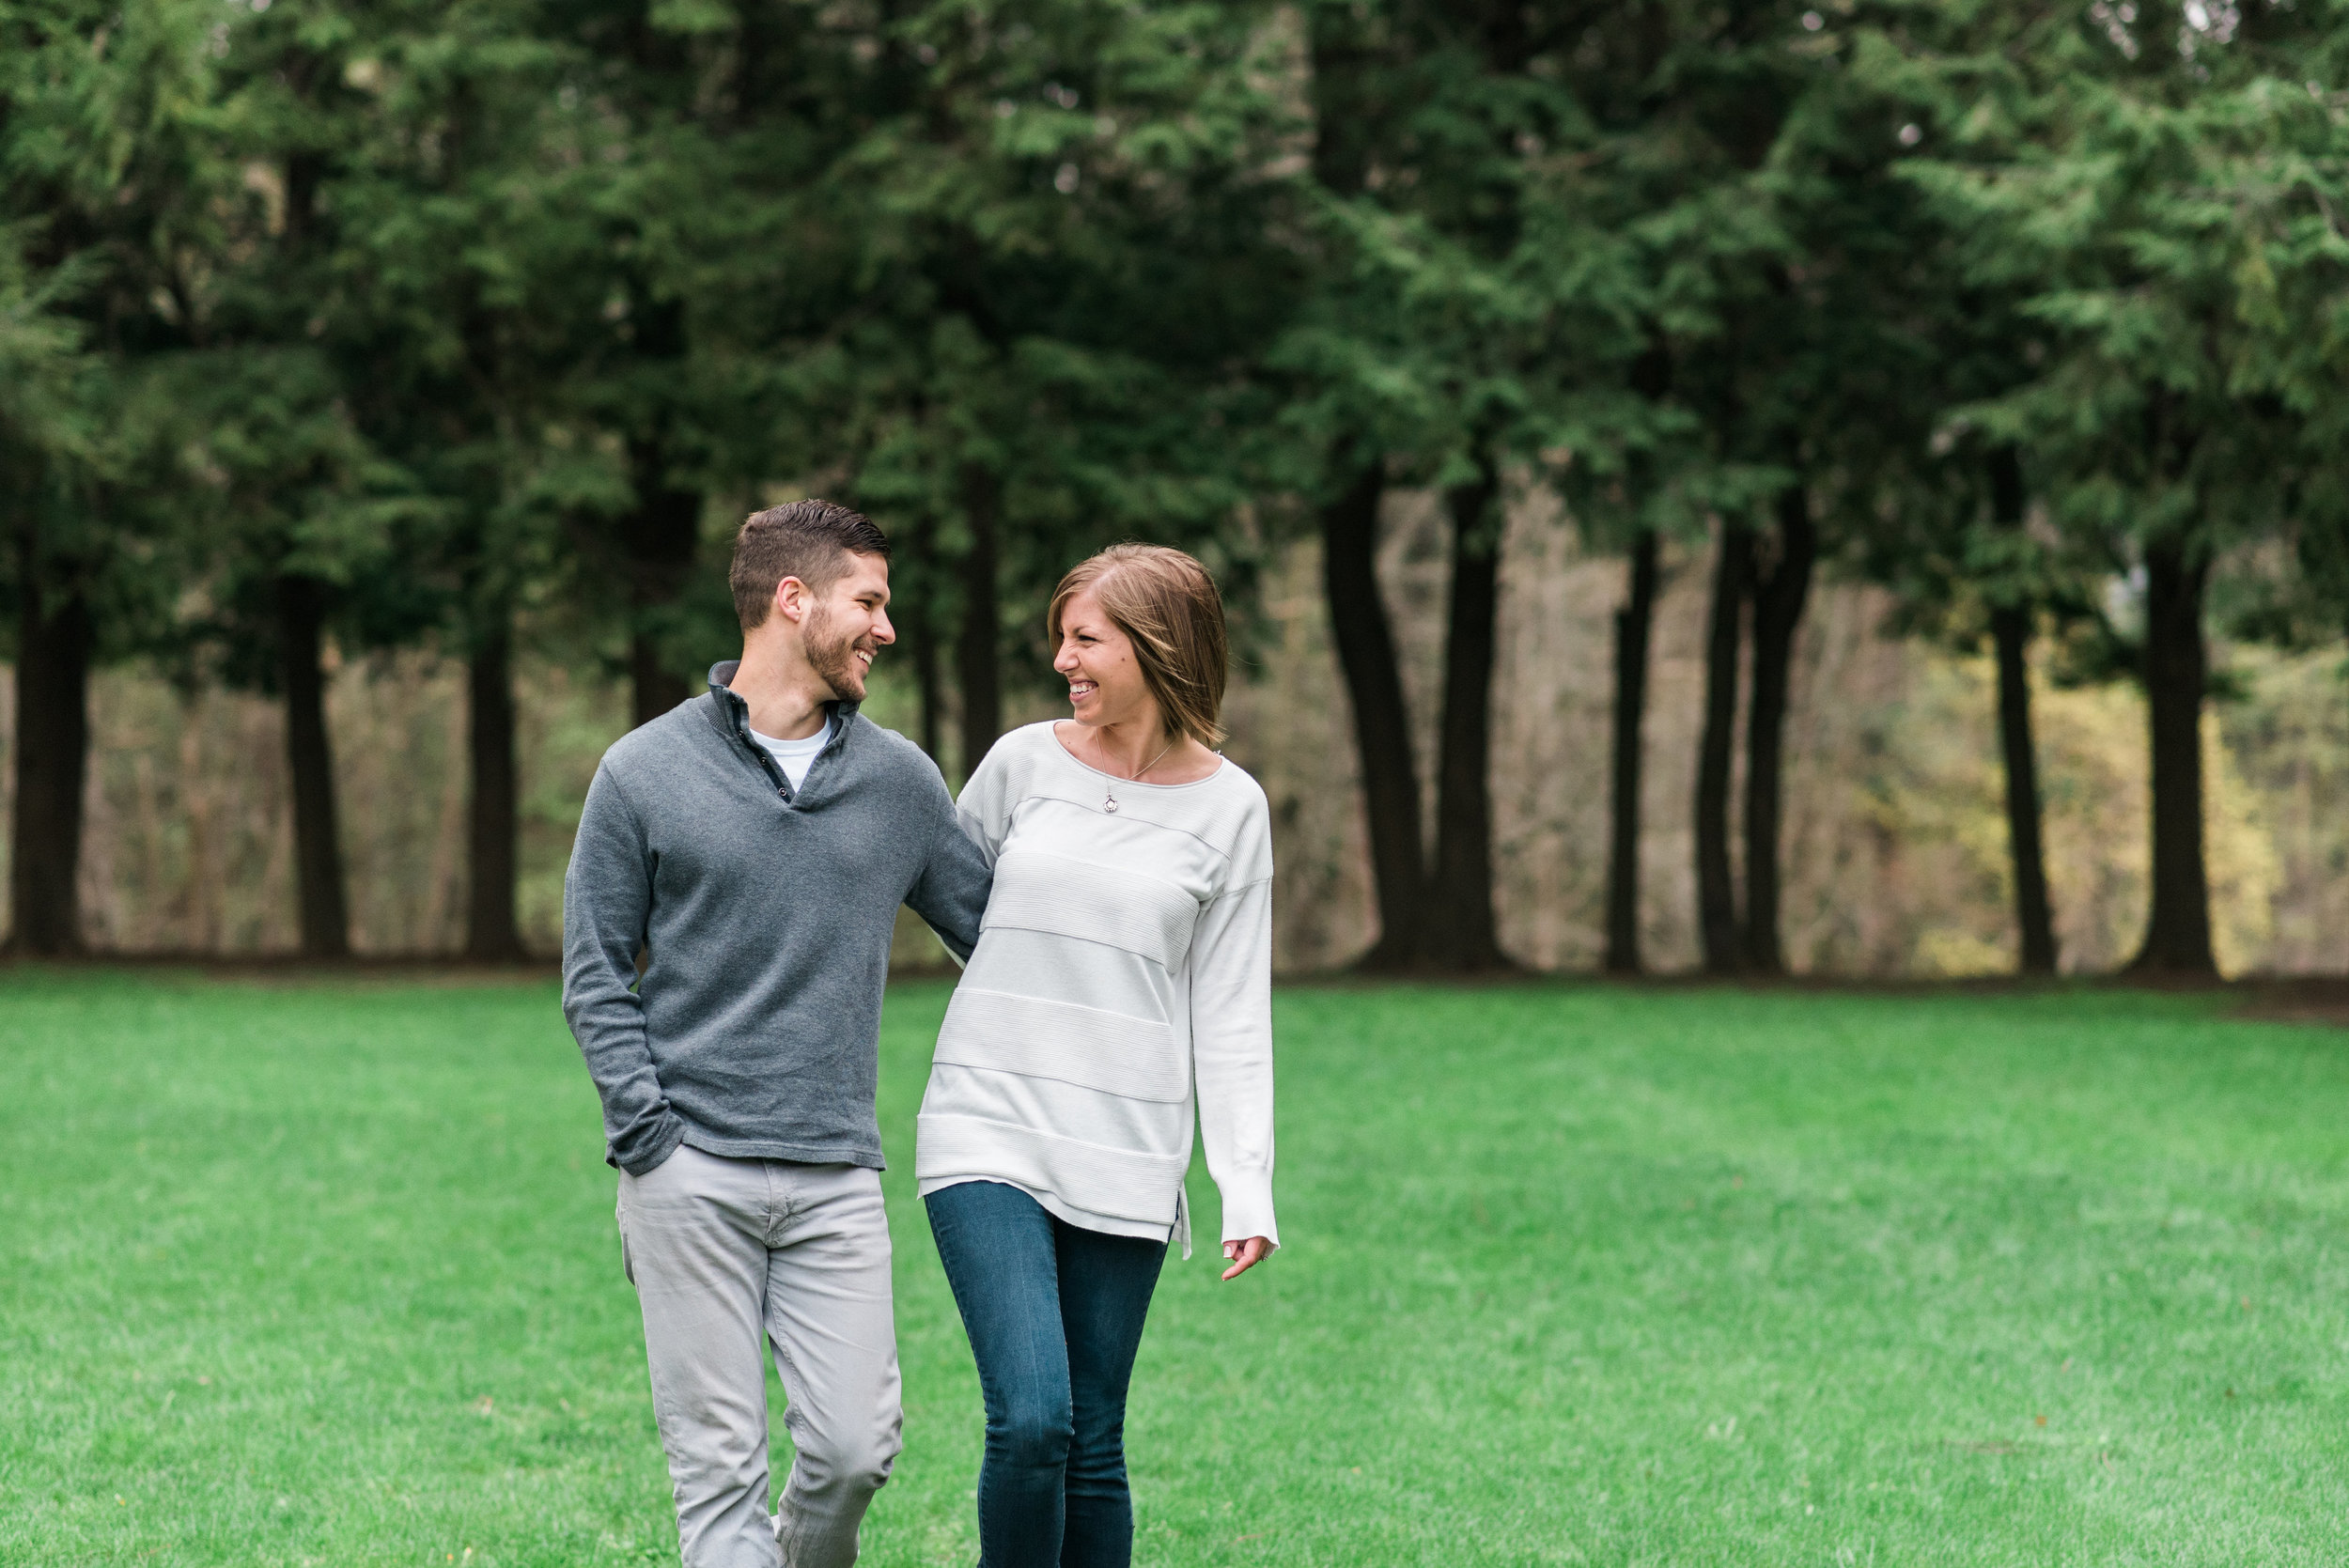 Pittsburgh Wedding Photography | Deena & Adam Engagement Session 9